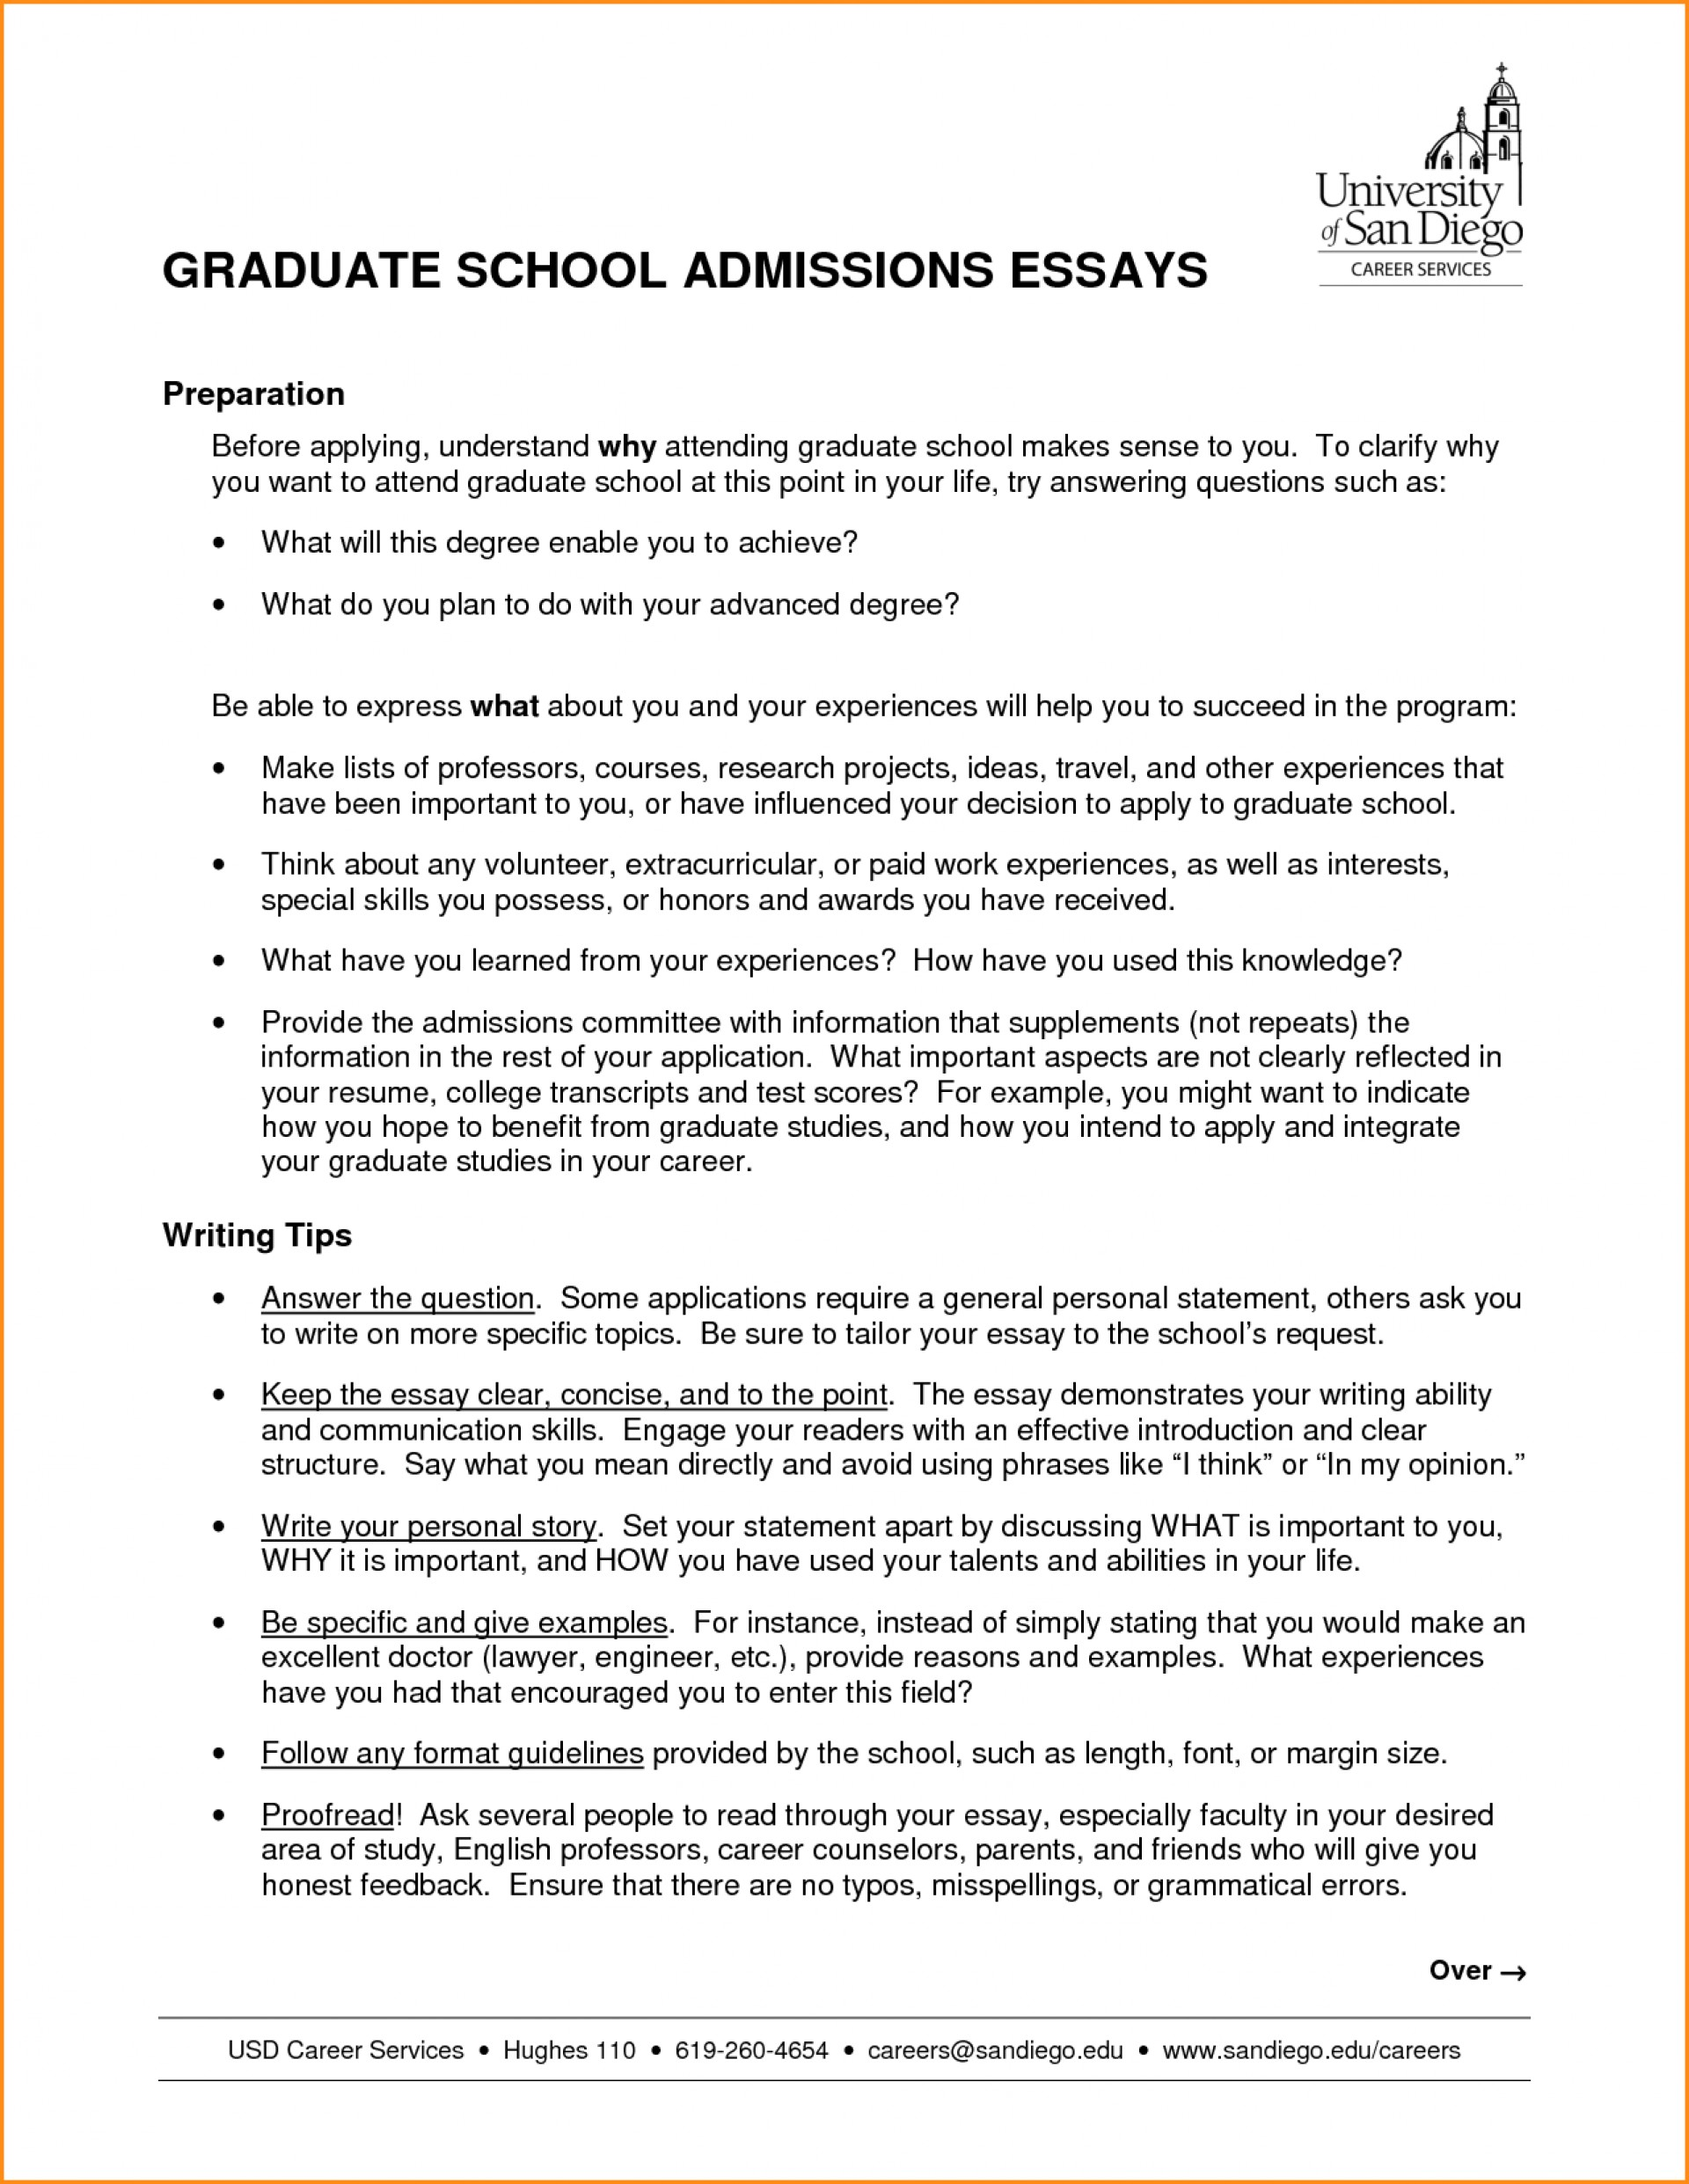 006 Graduation Essay Example High School Science Competitions For Students Pics Sample College Essays Applic International Competition Excellent 8th Grade 1920